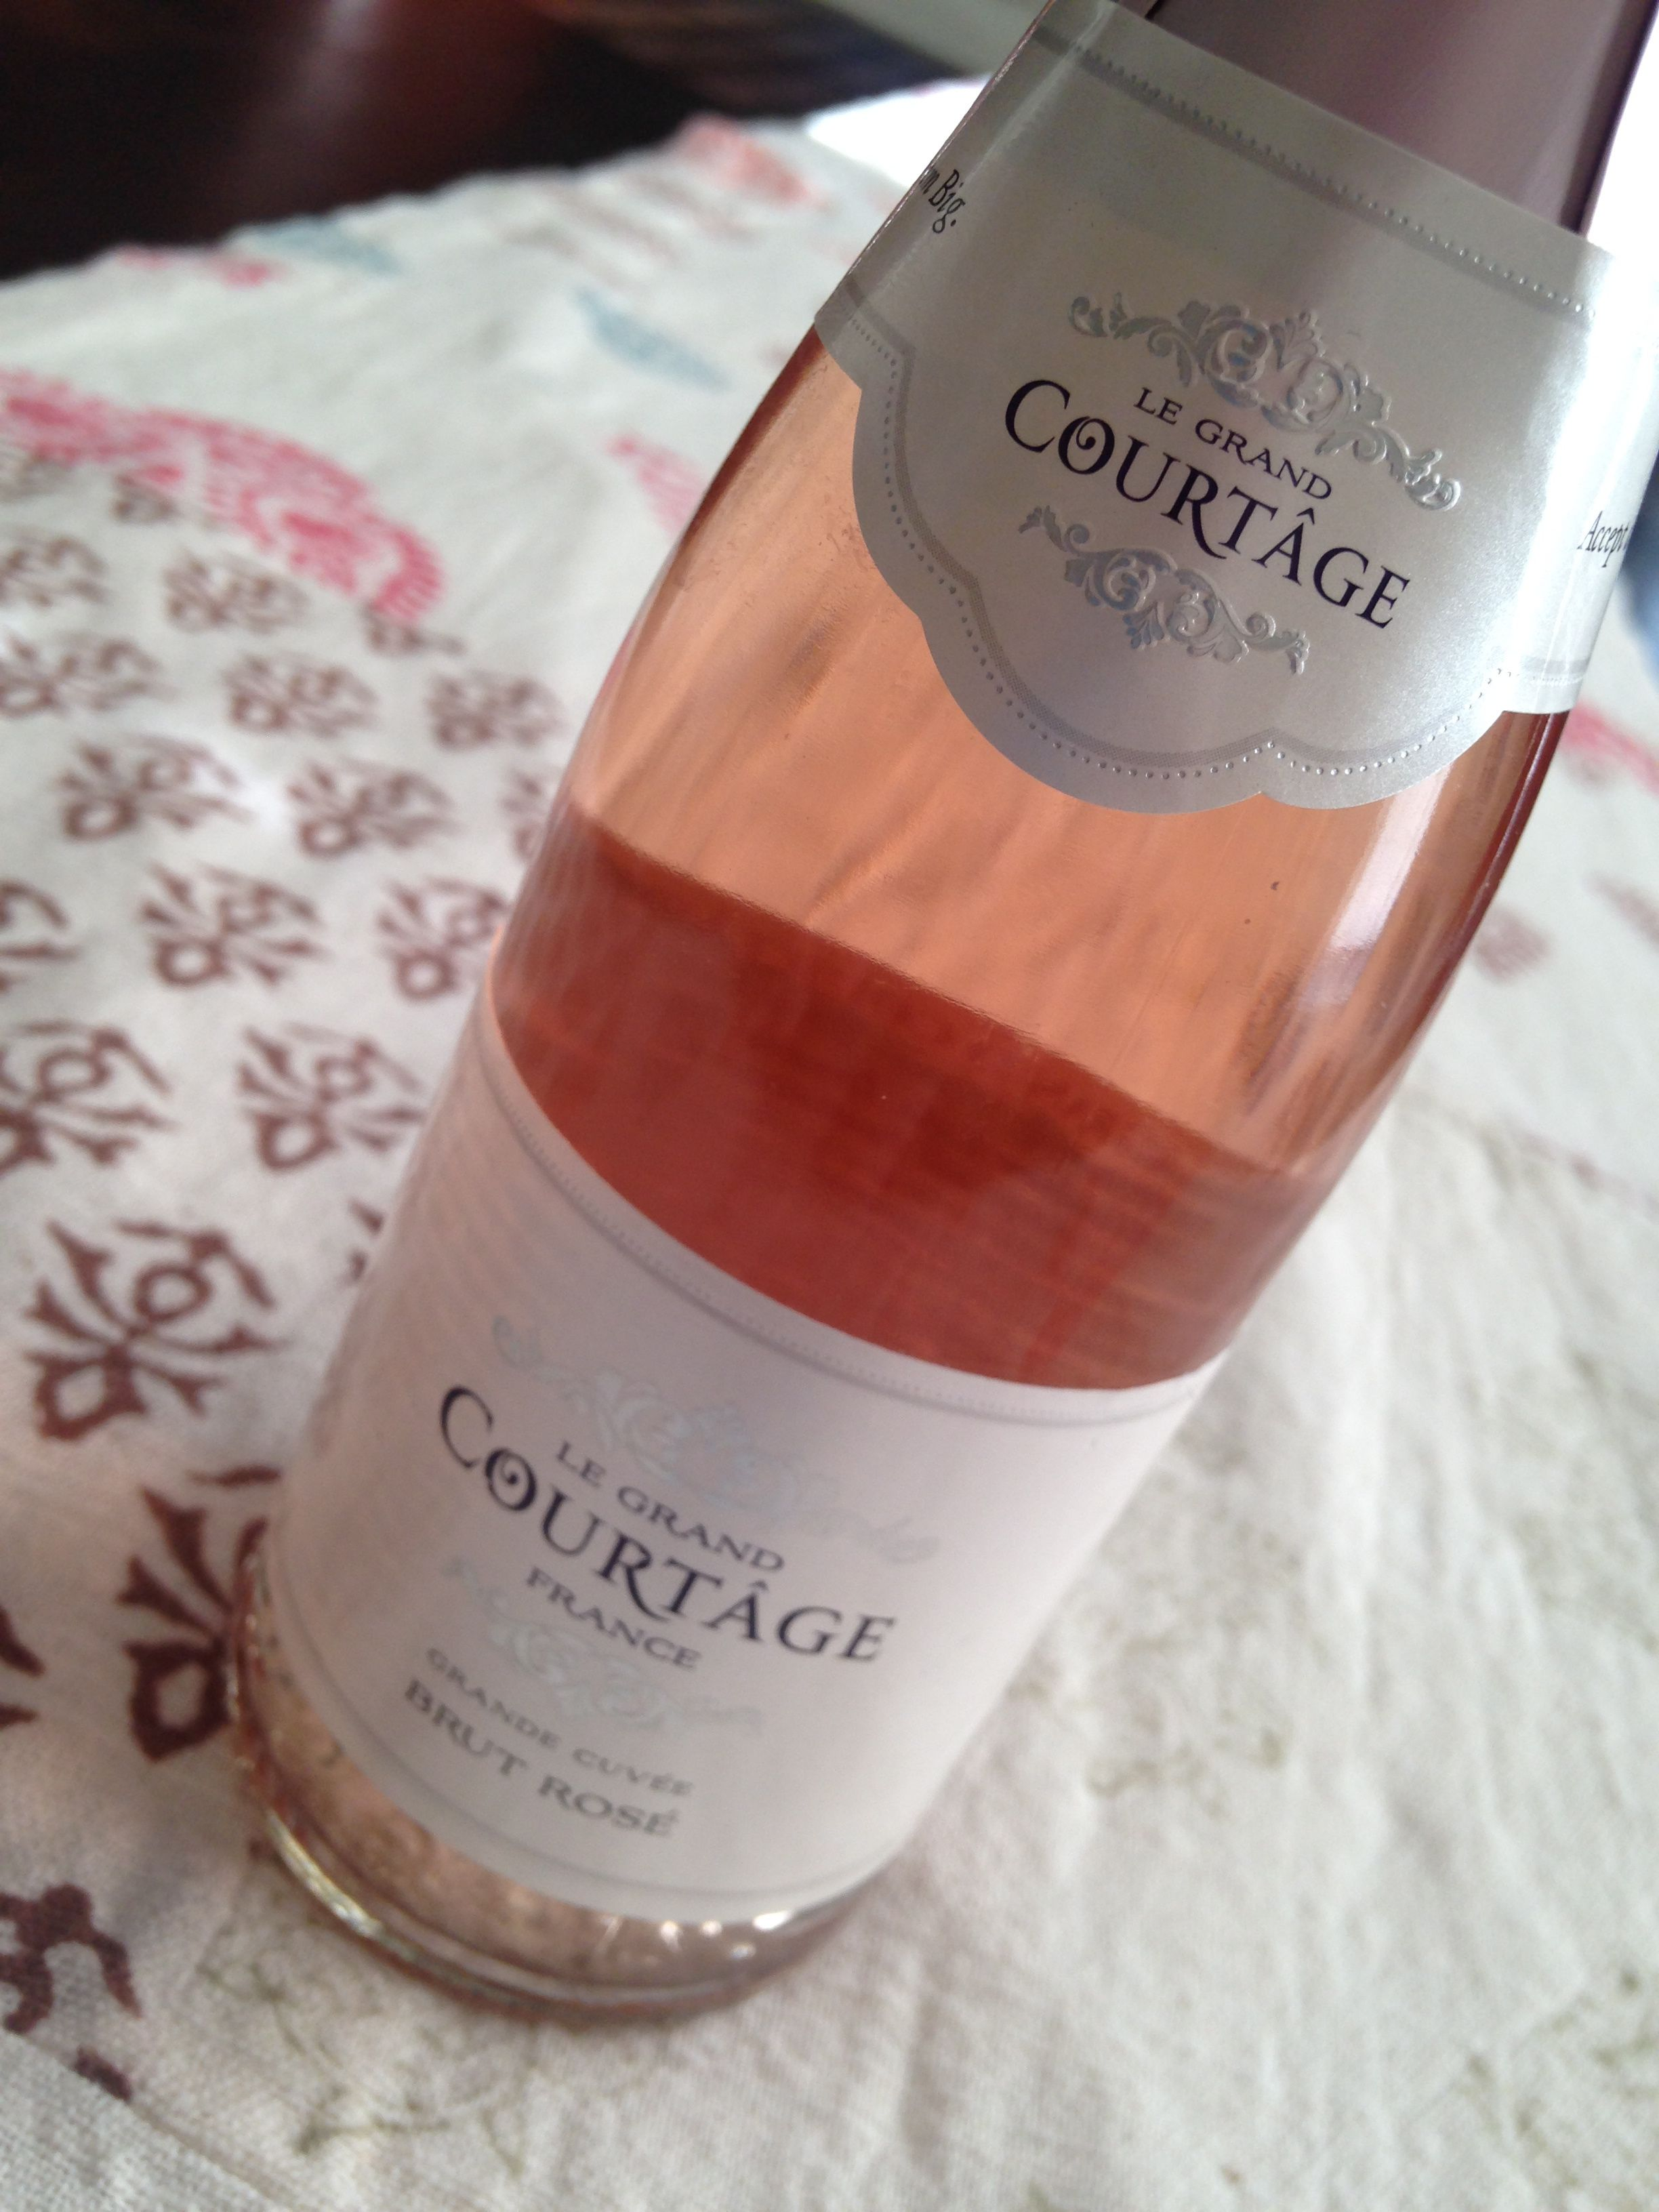 Le Grand Courtage Brut Rose I Tried This Rose Today And It Was Excellent Http Www Legrandcourtage Com About Grand Wine Bottle Sparkling Wine Wine List